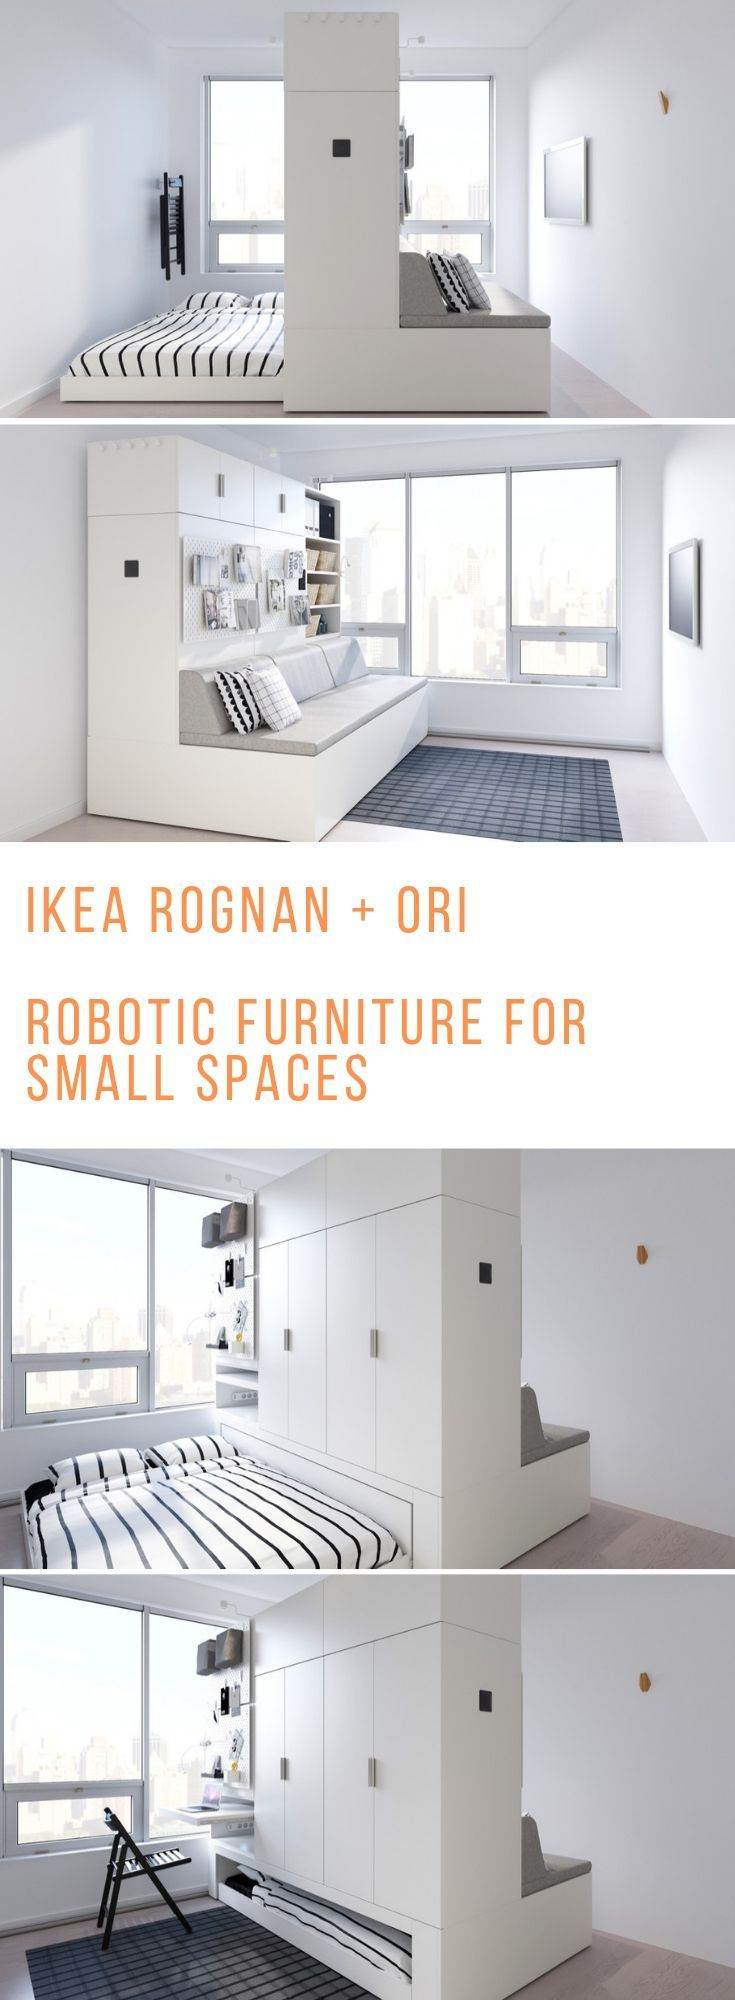 Photo of Robotic Furniture: IKEA's new big thing for tiny spaces – IKEA Hackers